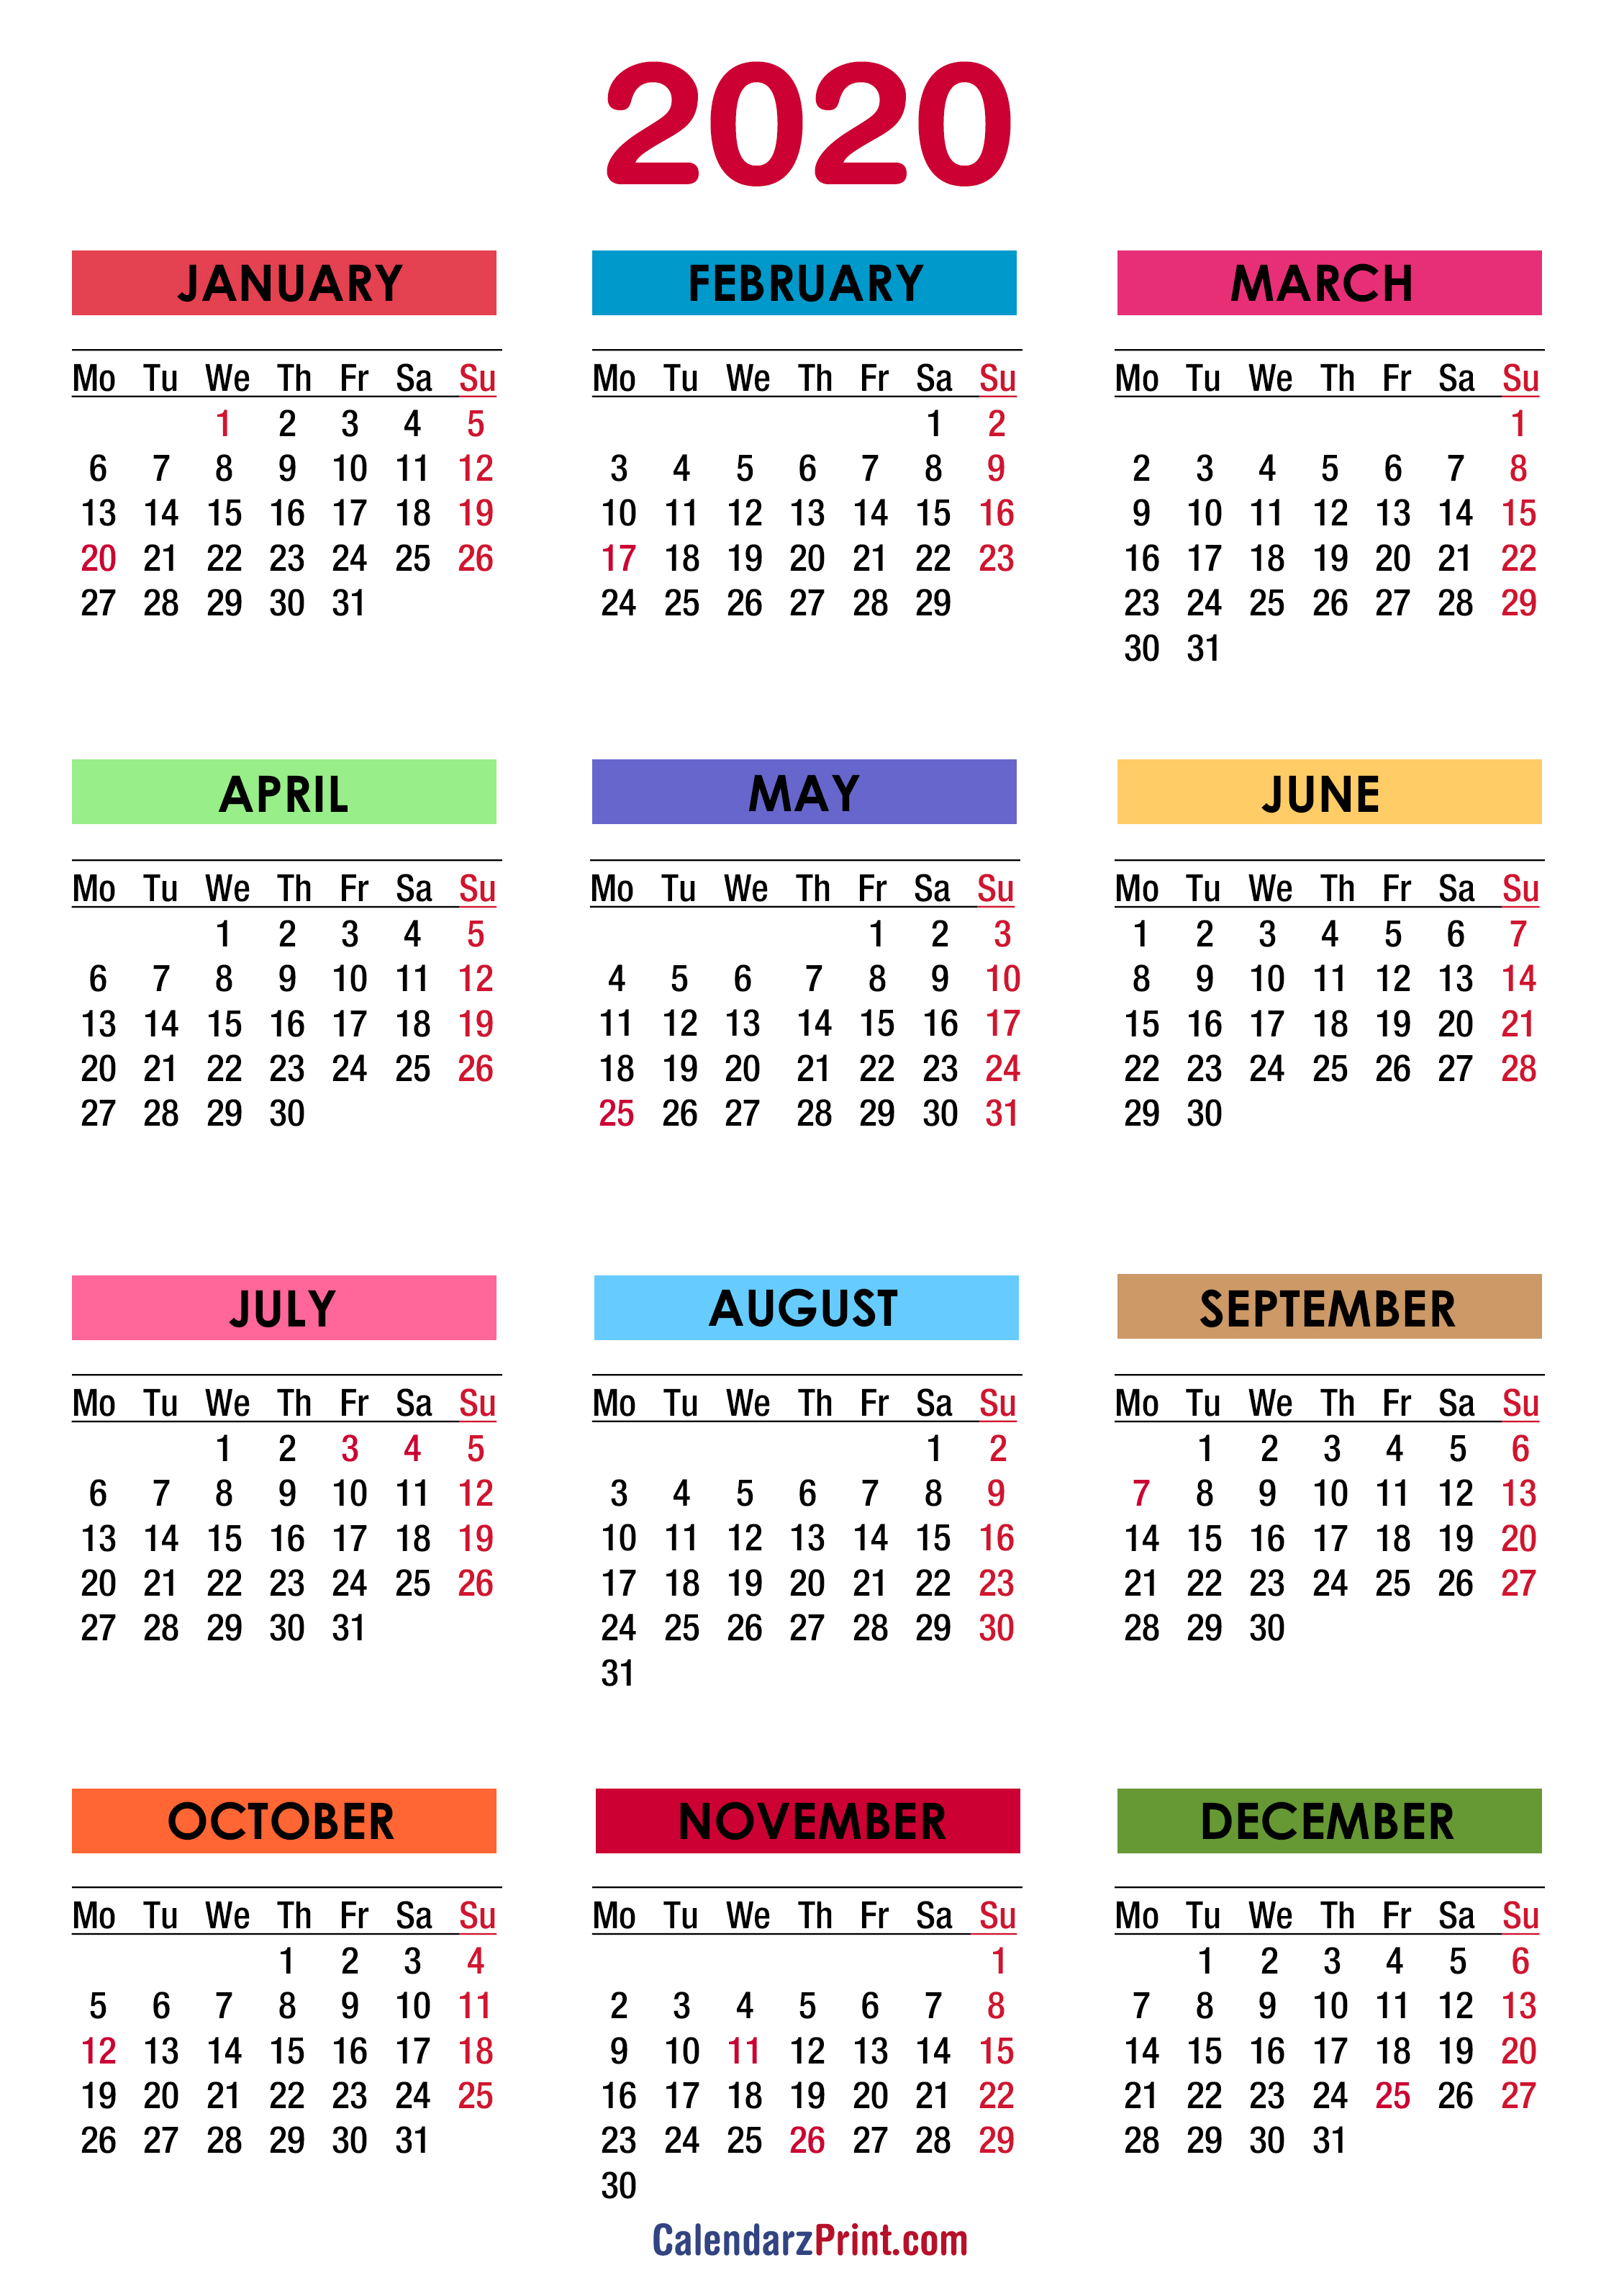 2020 calendar with holidays  printable free  colorful